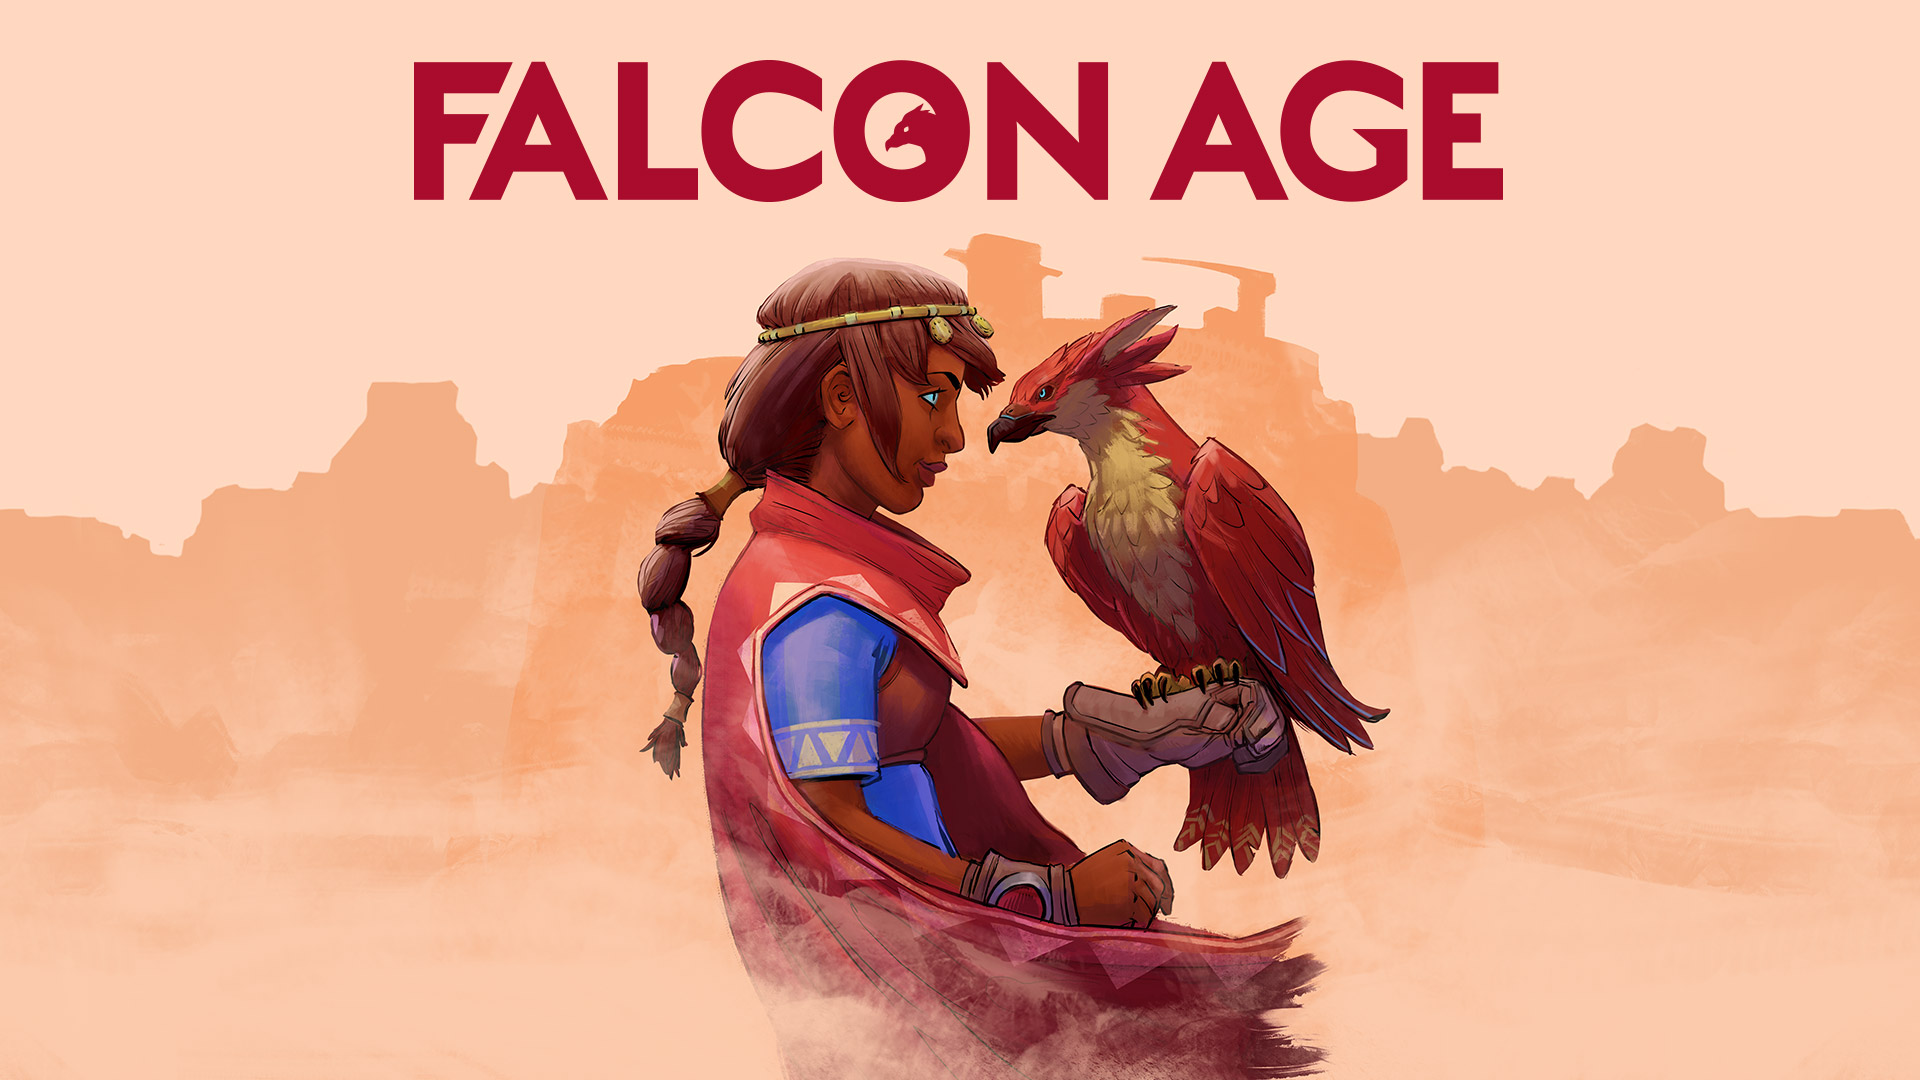 Free Falcon Age Wallpaper in 1920x1080